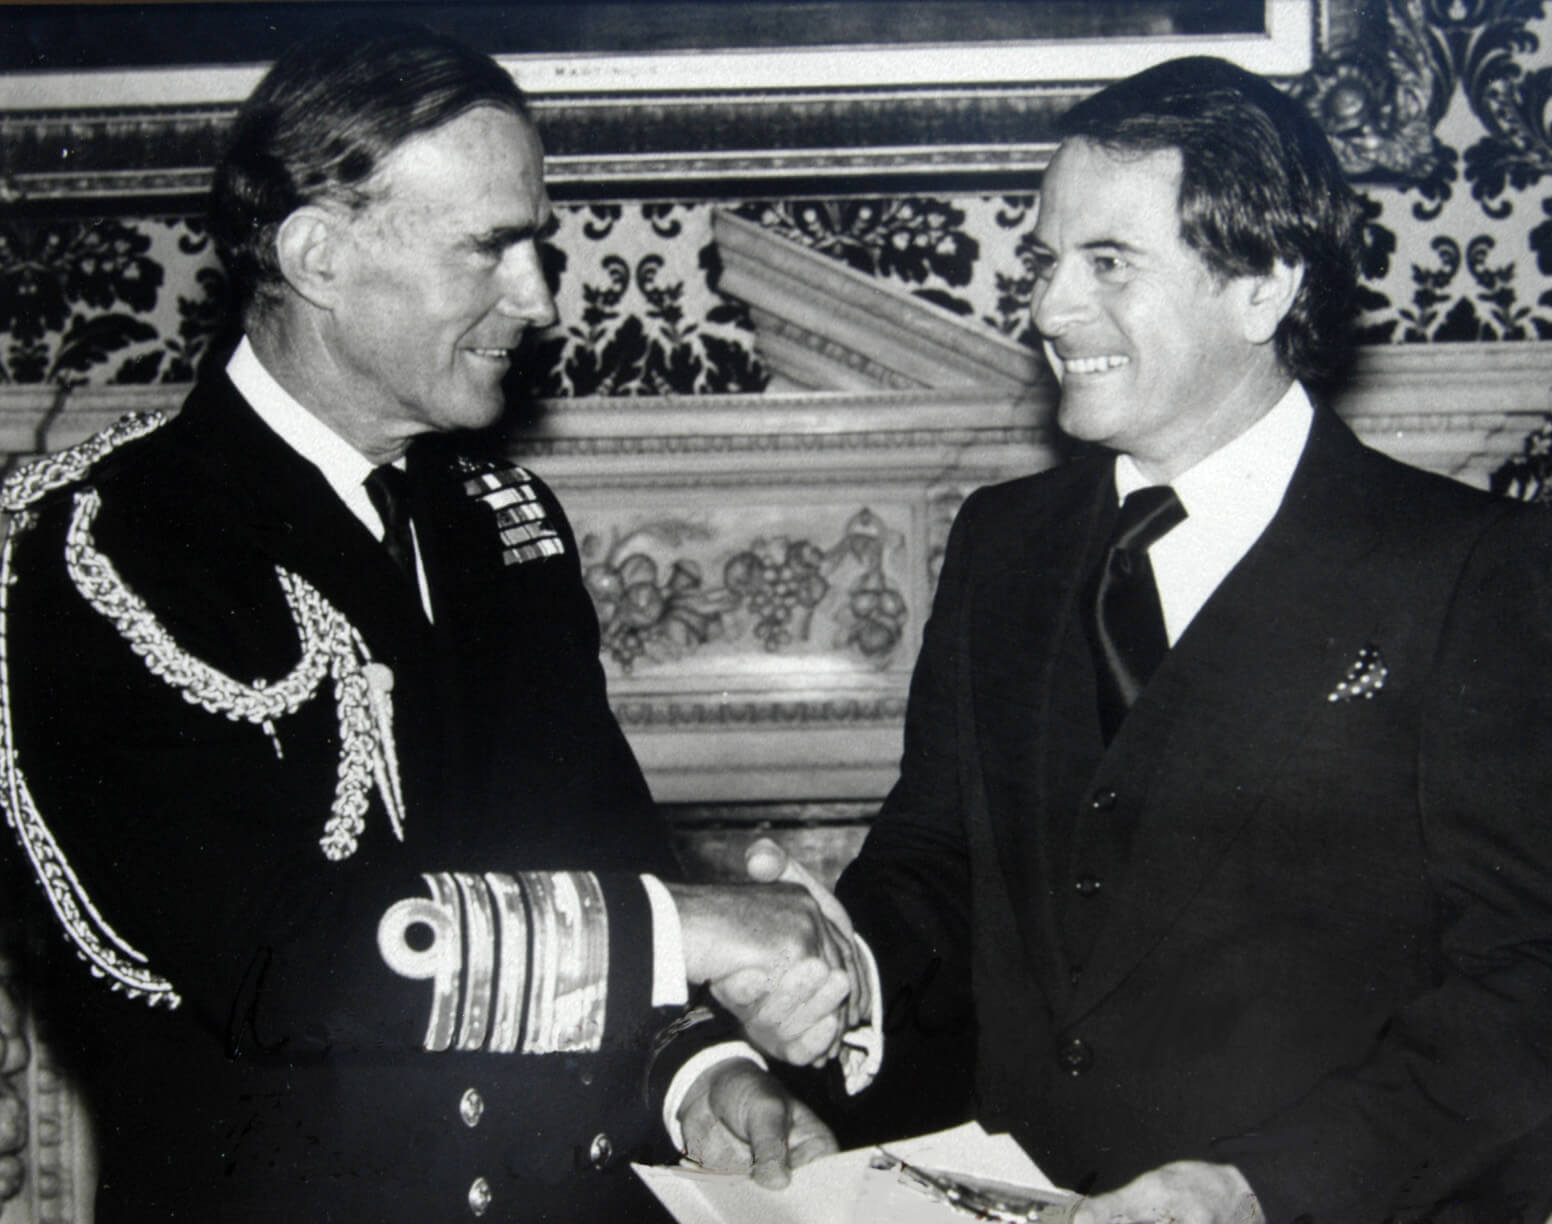 Admiral Tait, Second Sea Lord, receiving a check for the Sailor's Fund from Pusser's founder